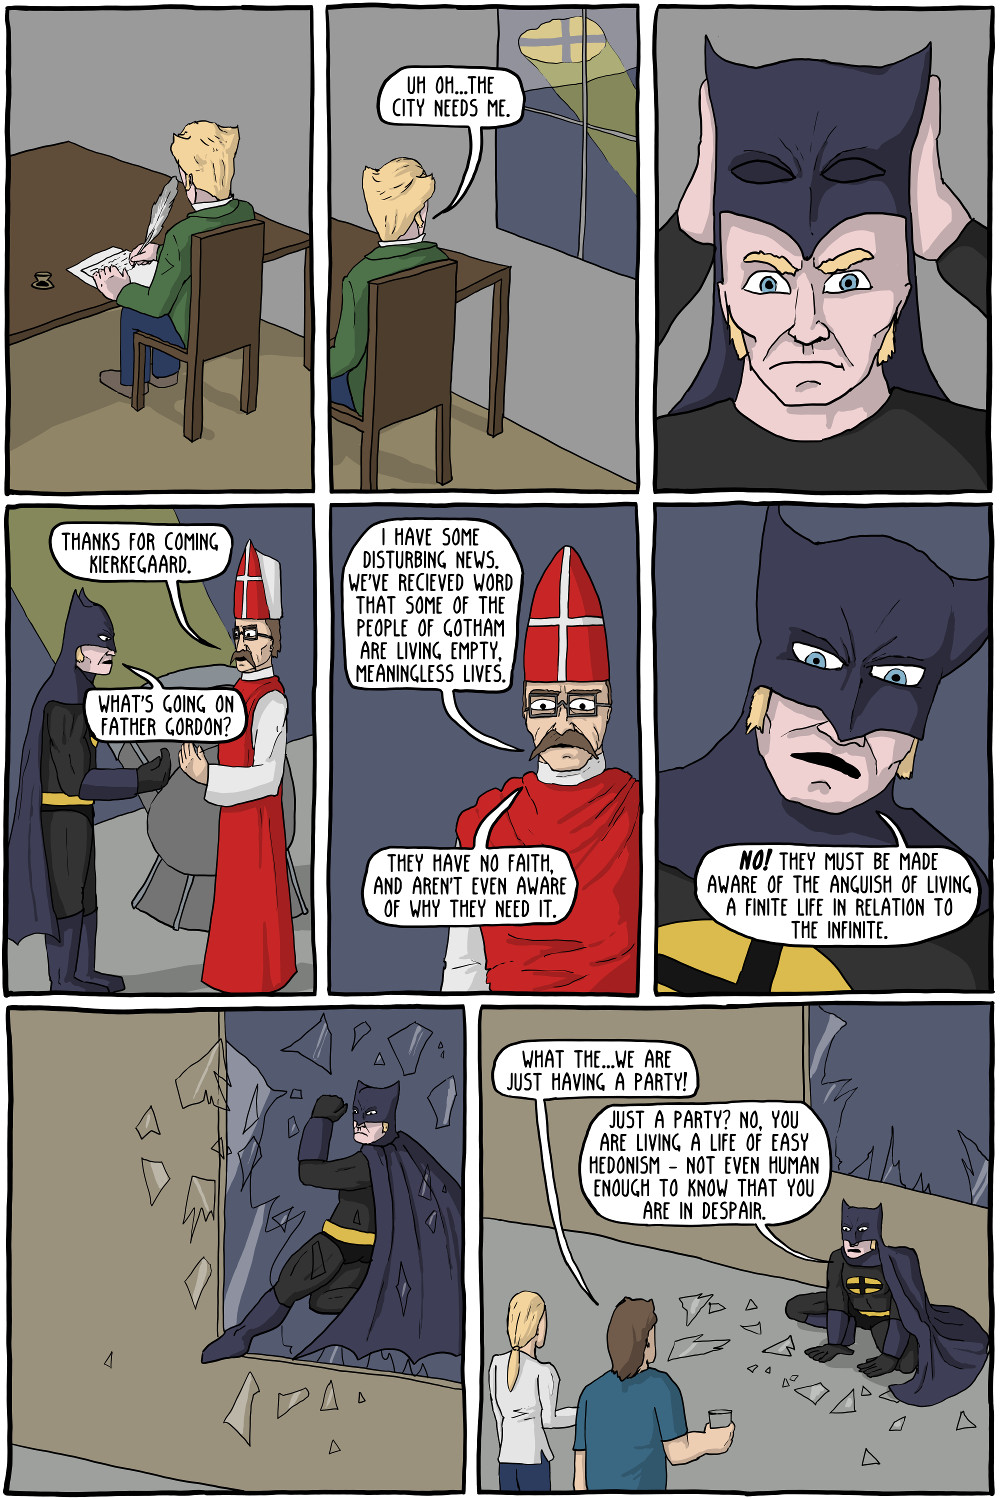 dark knight kierkegaard 1